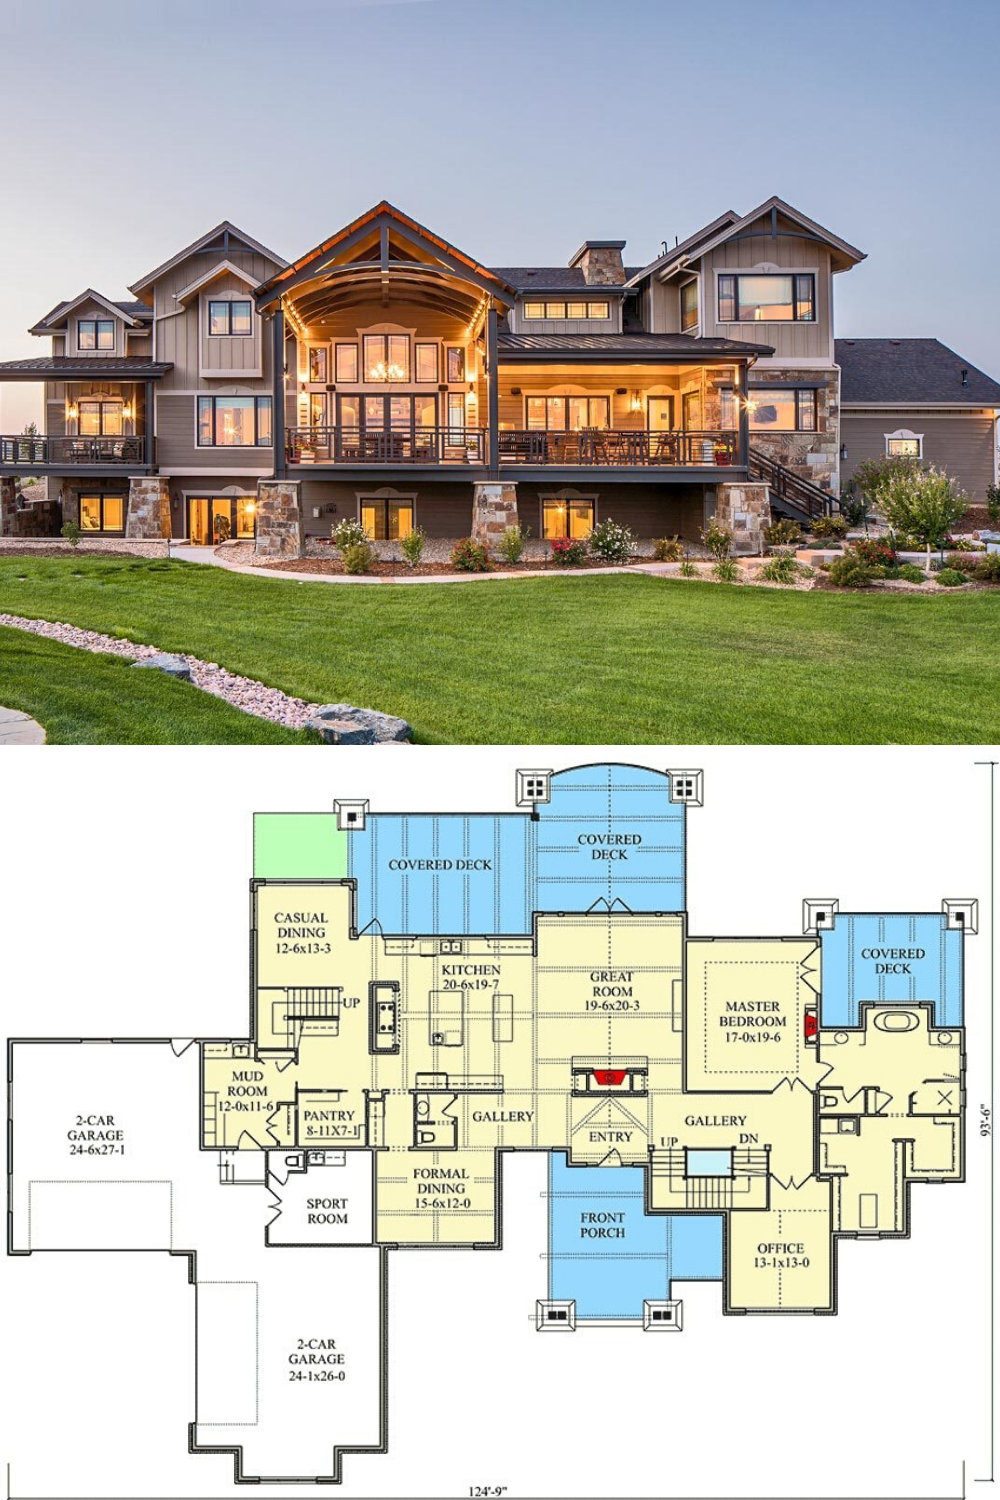 4 Bedroom Two Story Mountain Home With First Floor Primary Suite Floor Plan House Plans Mansion Mansion Floor Plan House Blueprints